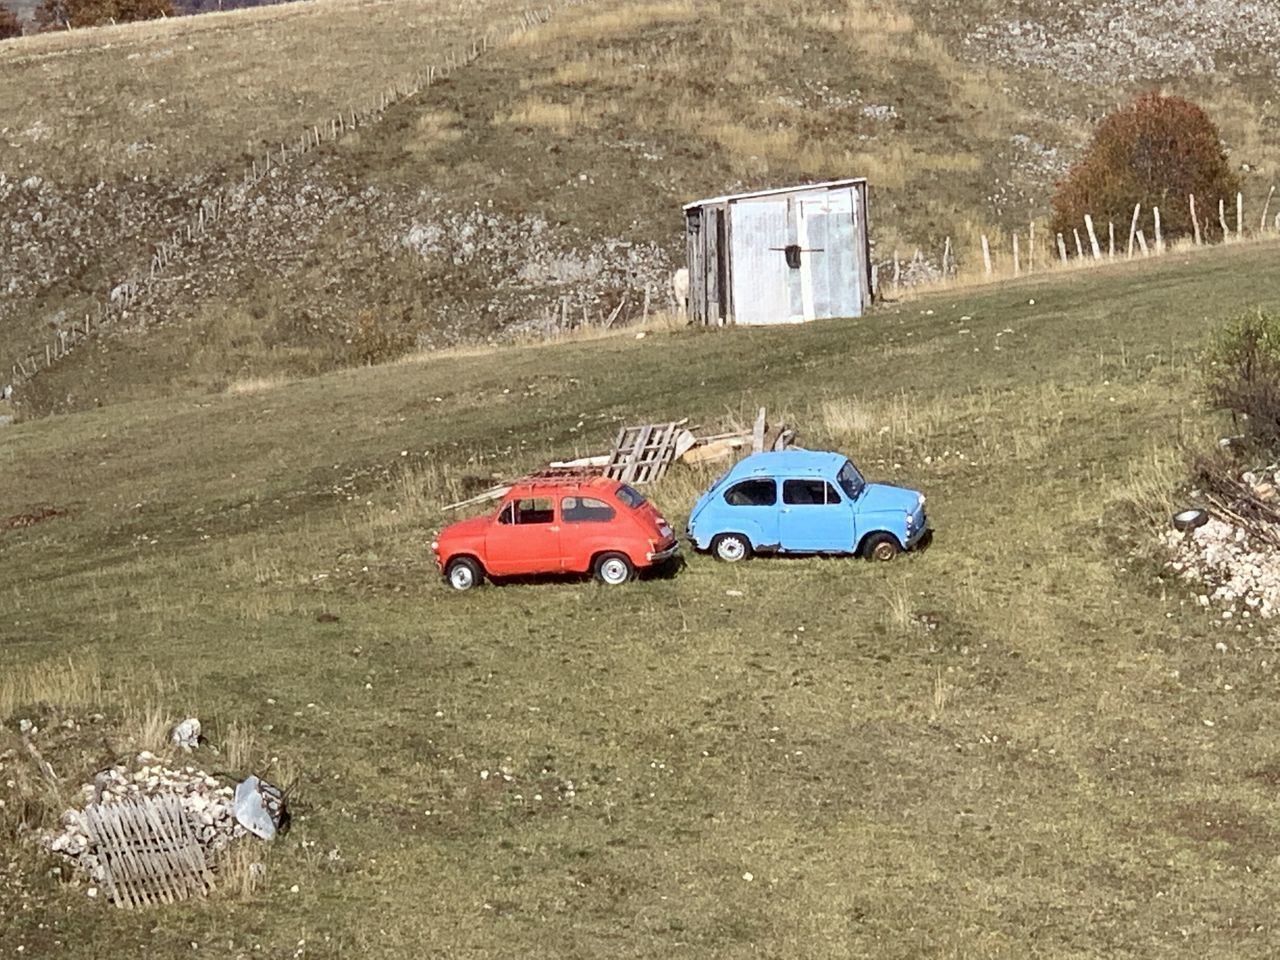 HIGH ANGLE VIEW OF ABANDONED CARS ON ROAD